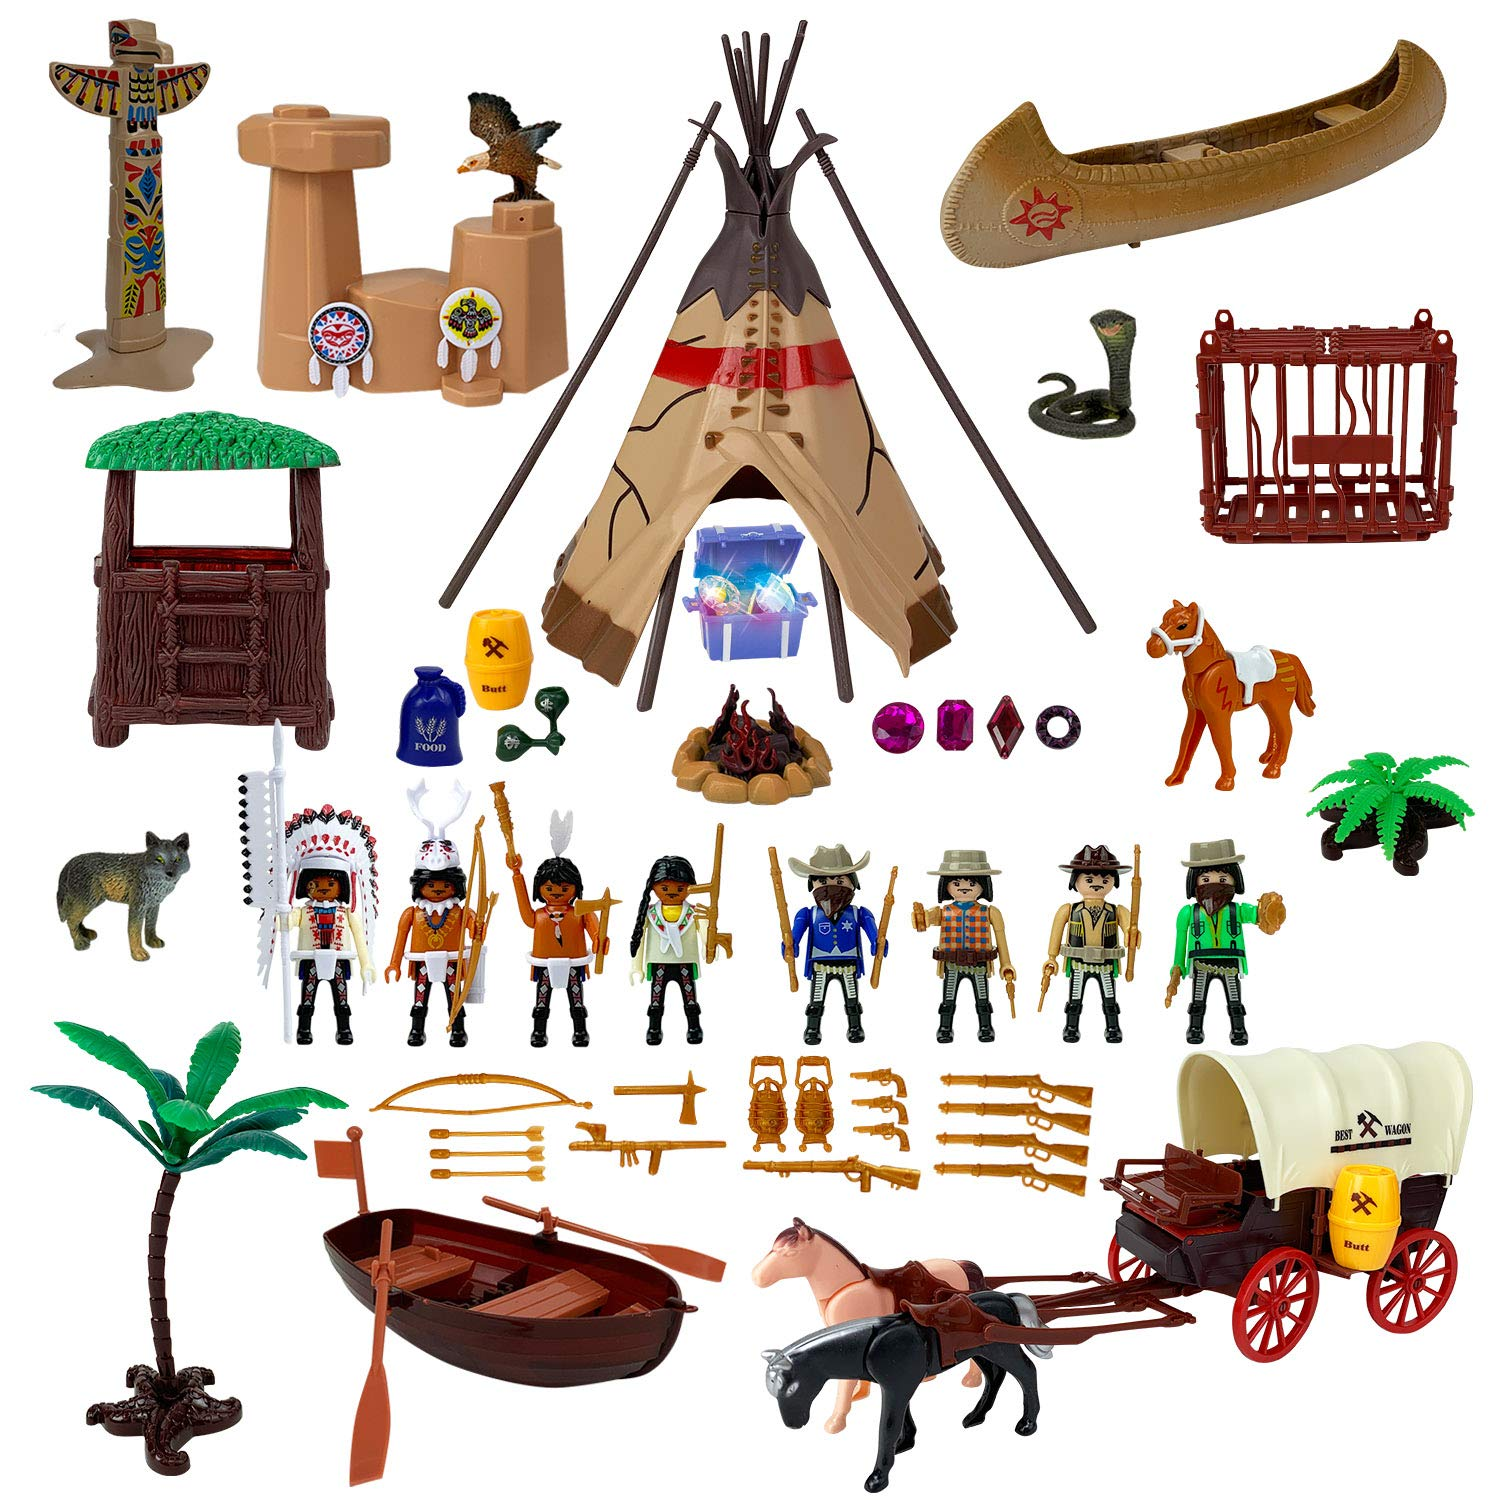 Wild west heading clipart png Liberty Imports Deluxe Wild West Cowboys and Indians Plastic Figures  Playset - Educational Toy Soldiers Native American Action Figurines and ... png